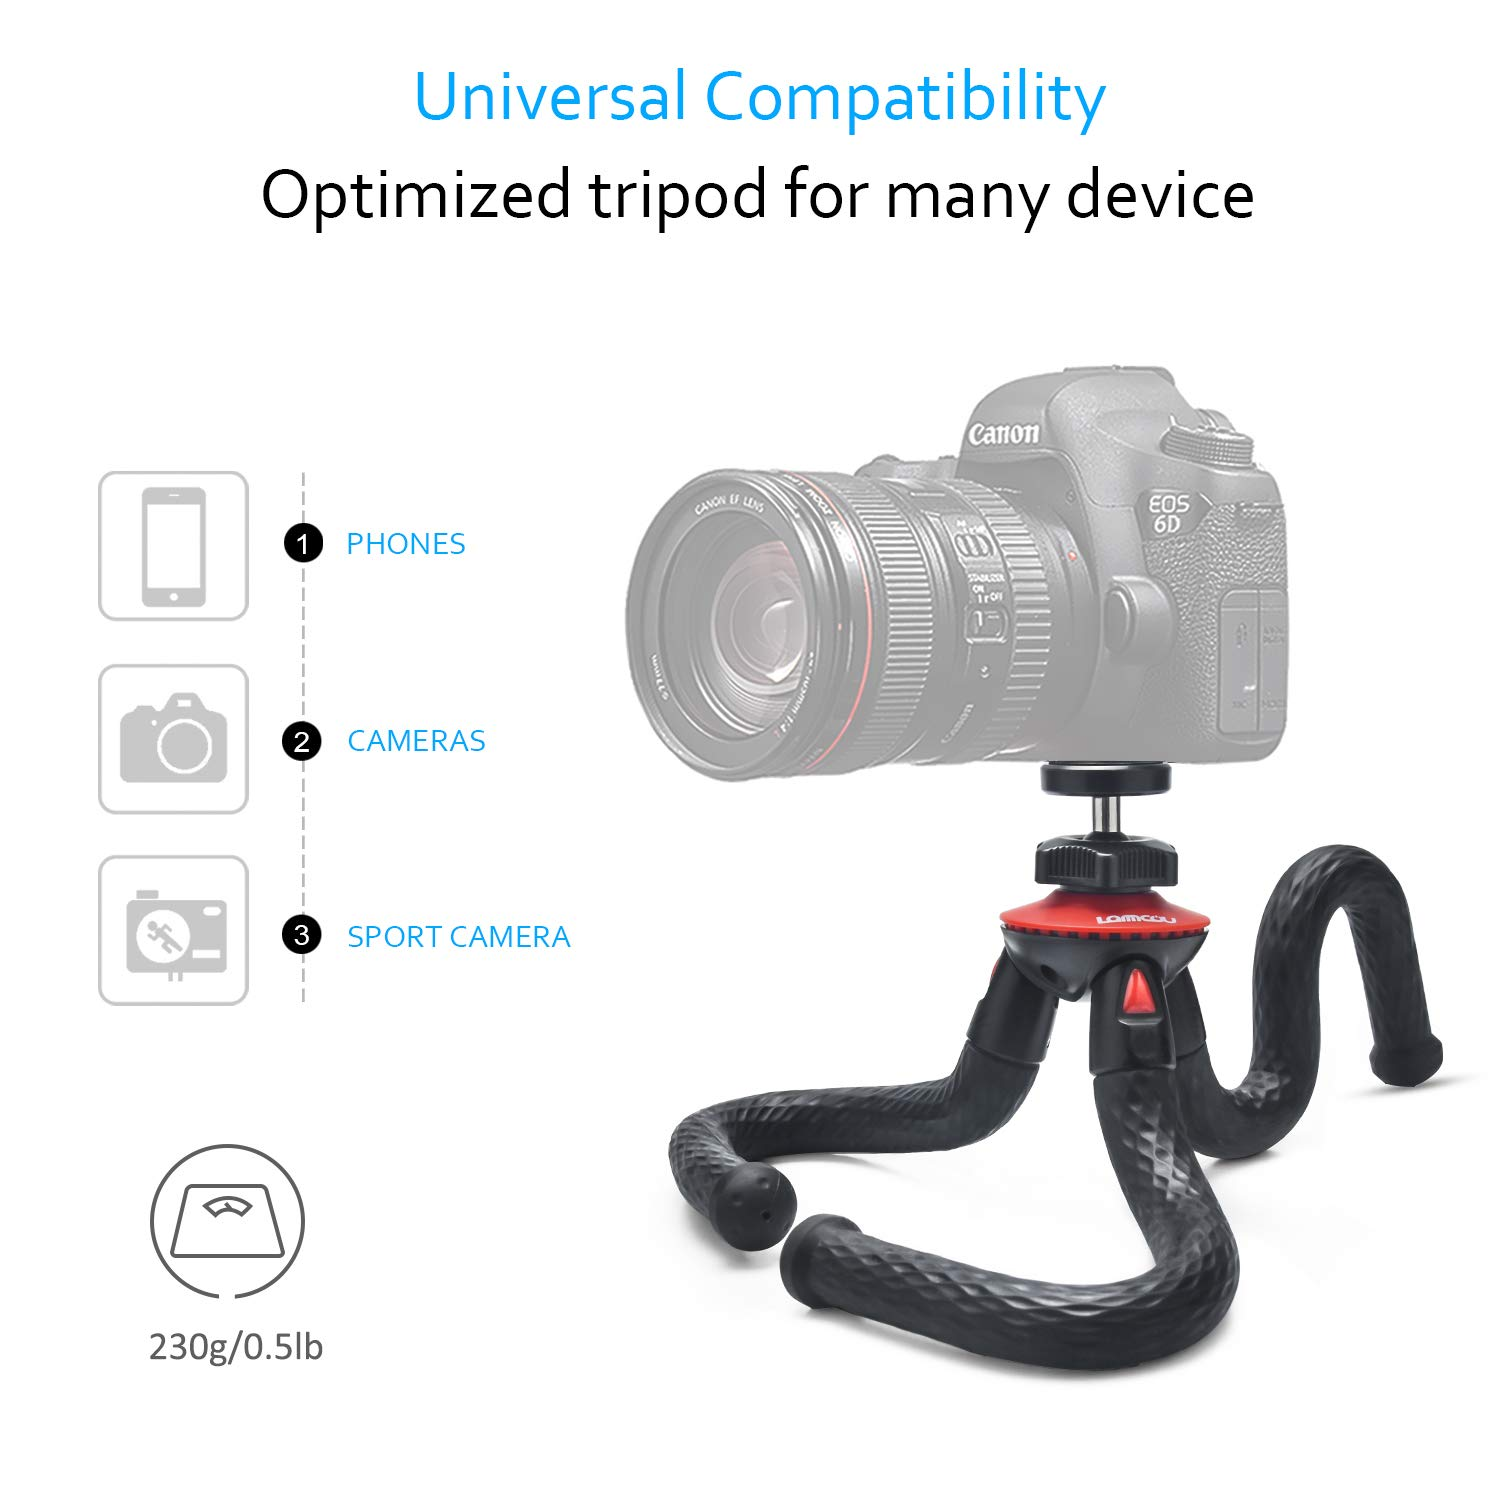 Flexible Camera Tripod Vlogging Bendable Travel Octopus Gorilla Portable Mini Tripods for DSLR Camera GoPro Smartphone Cell Phone Actioncam Webcam Camcorder Canon GX7 Nikon Sony Phone Xs Samsung Stand by Lammcou (Image #2)